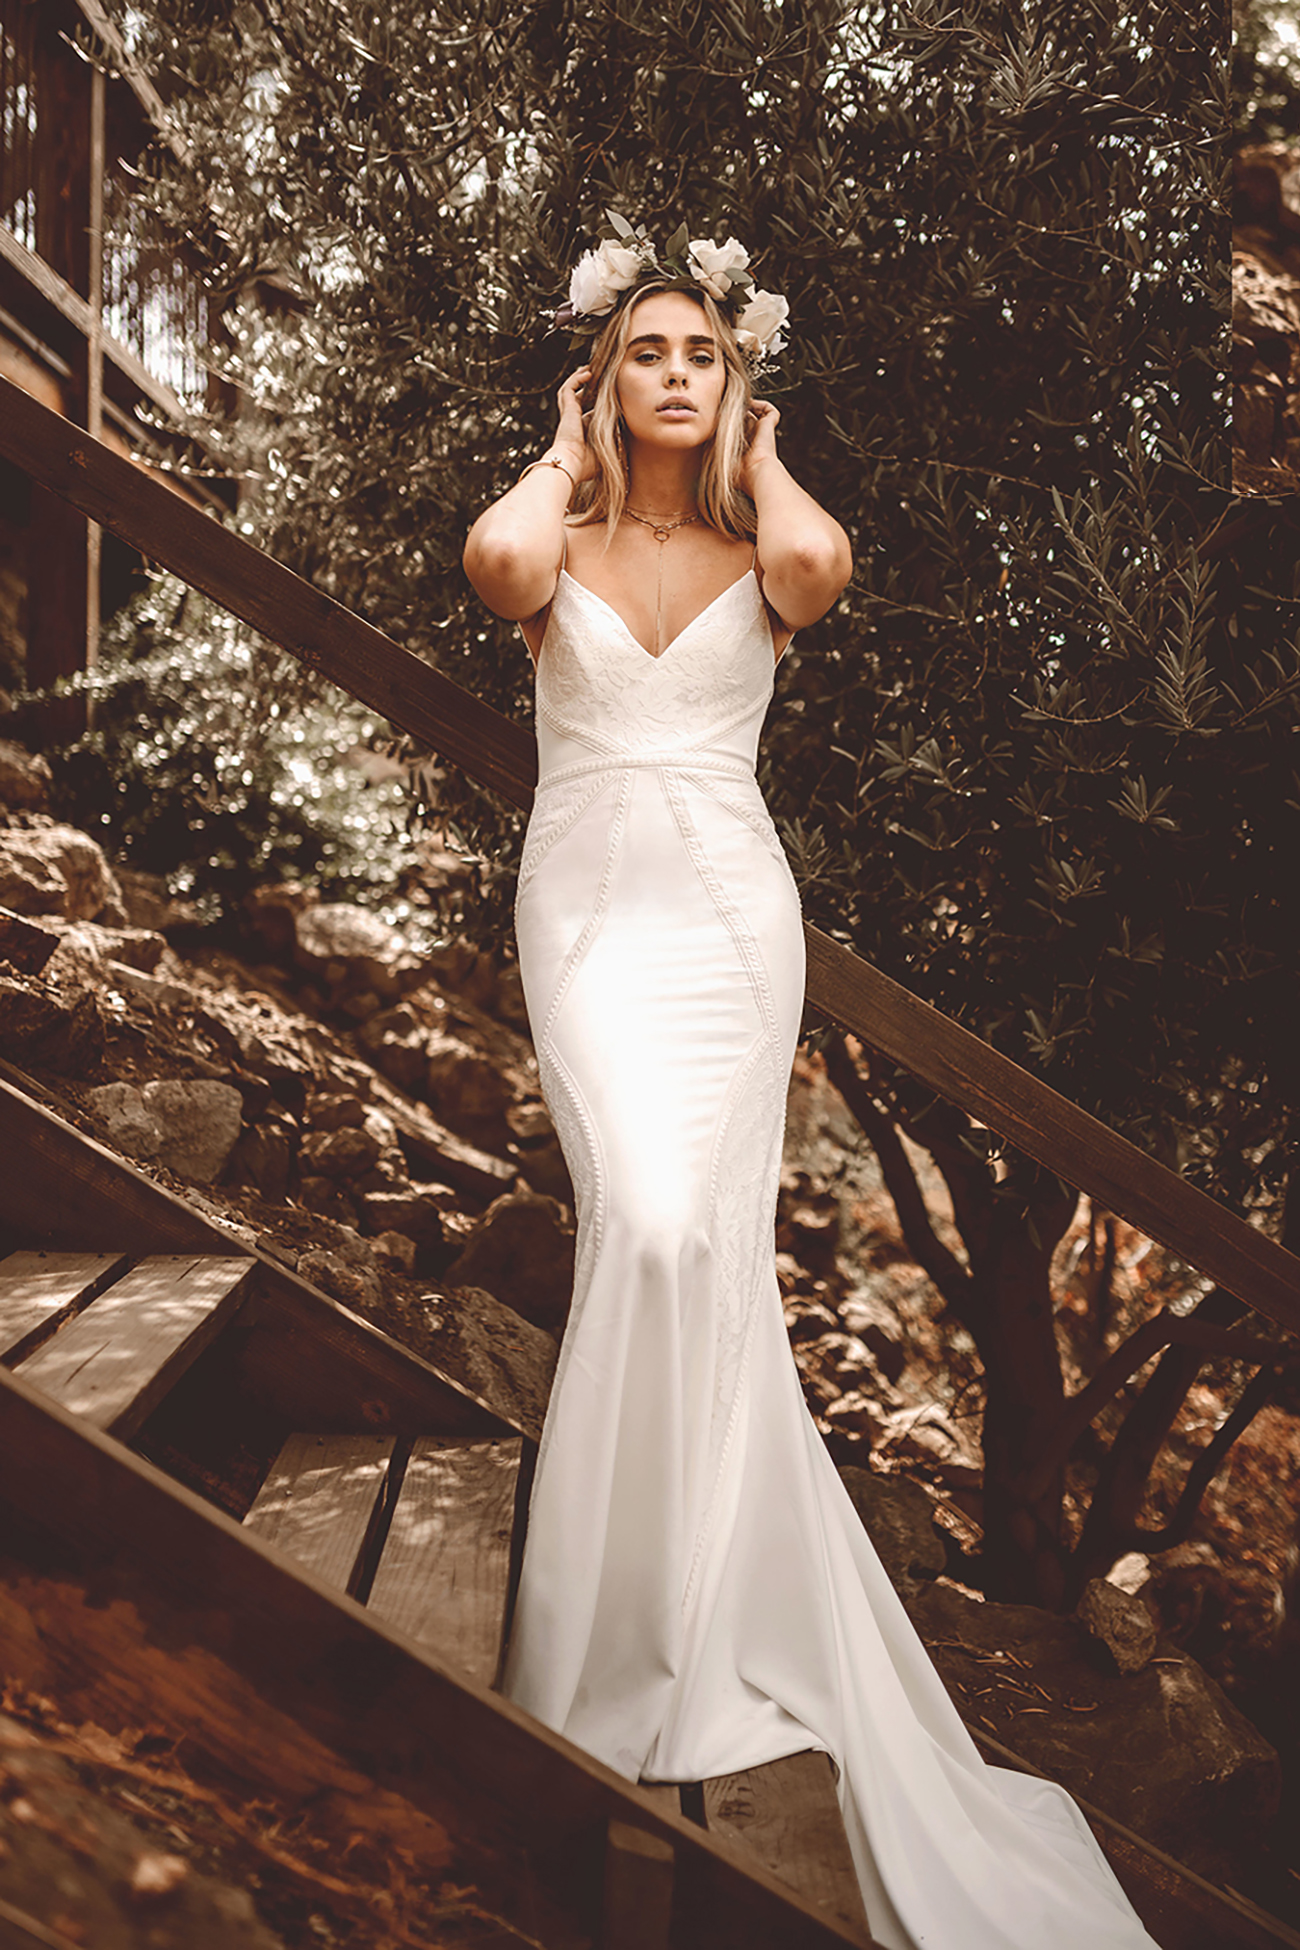 Surf Sand 14 Wedding Dresses For Your Laid Back Beach